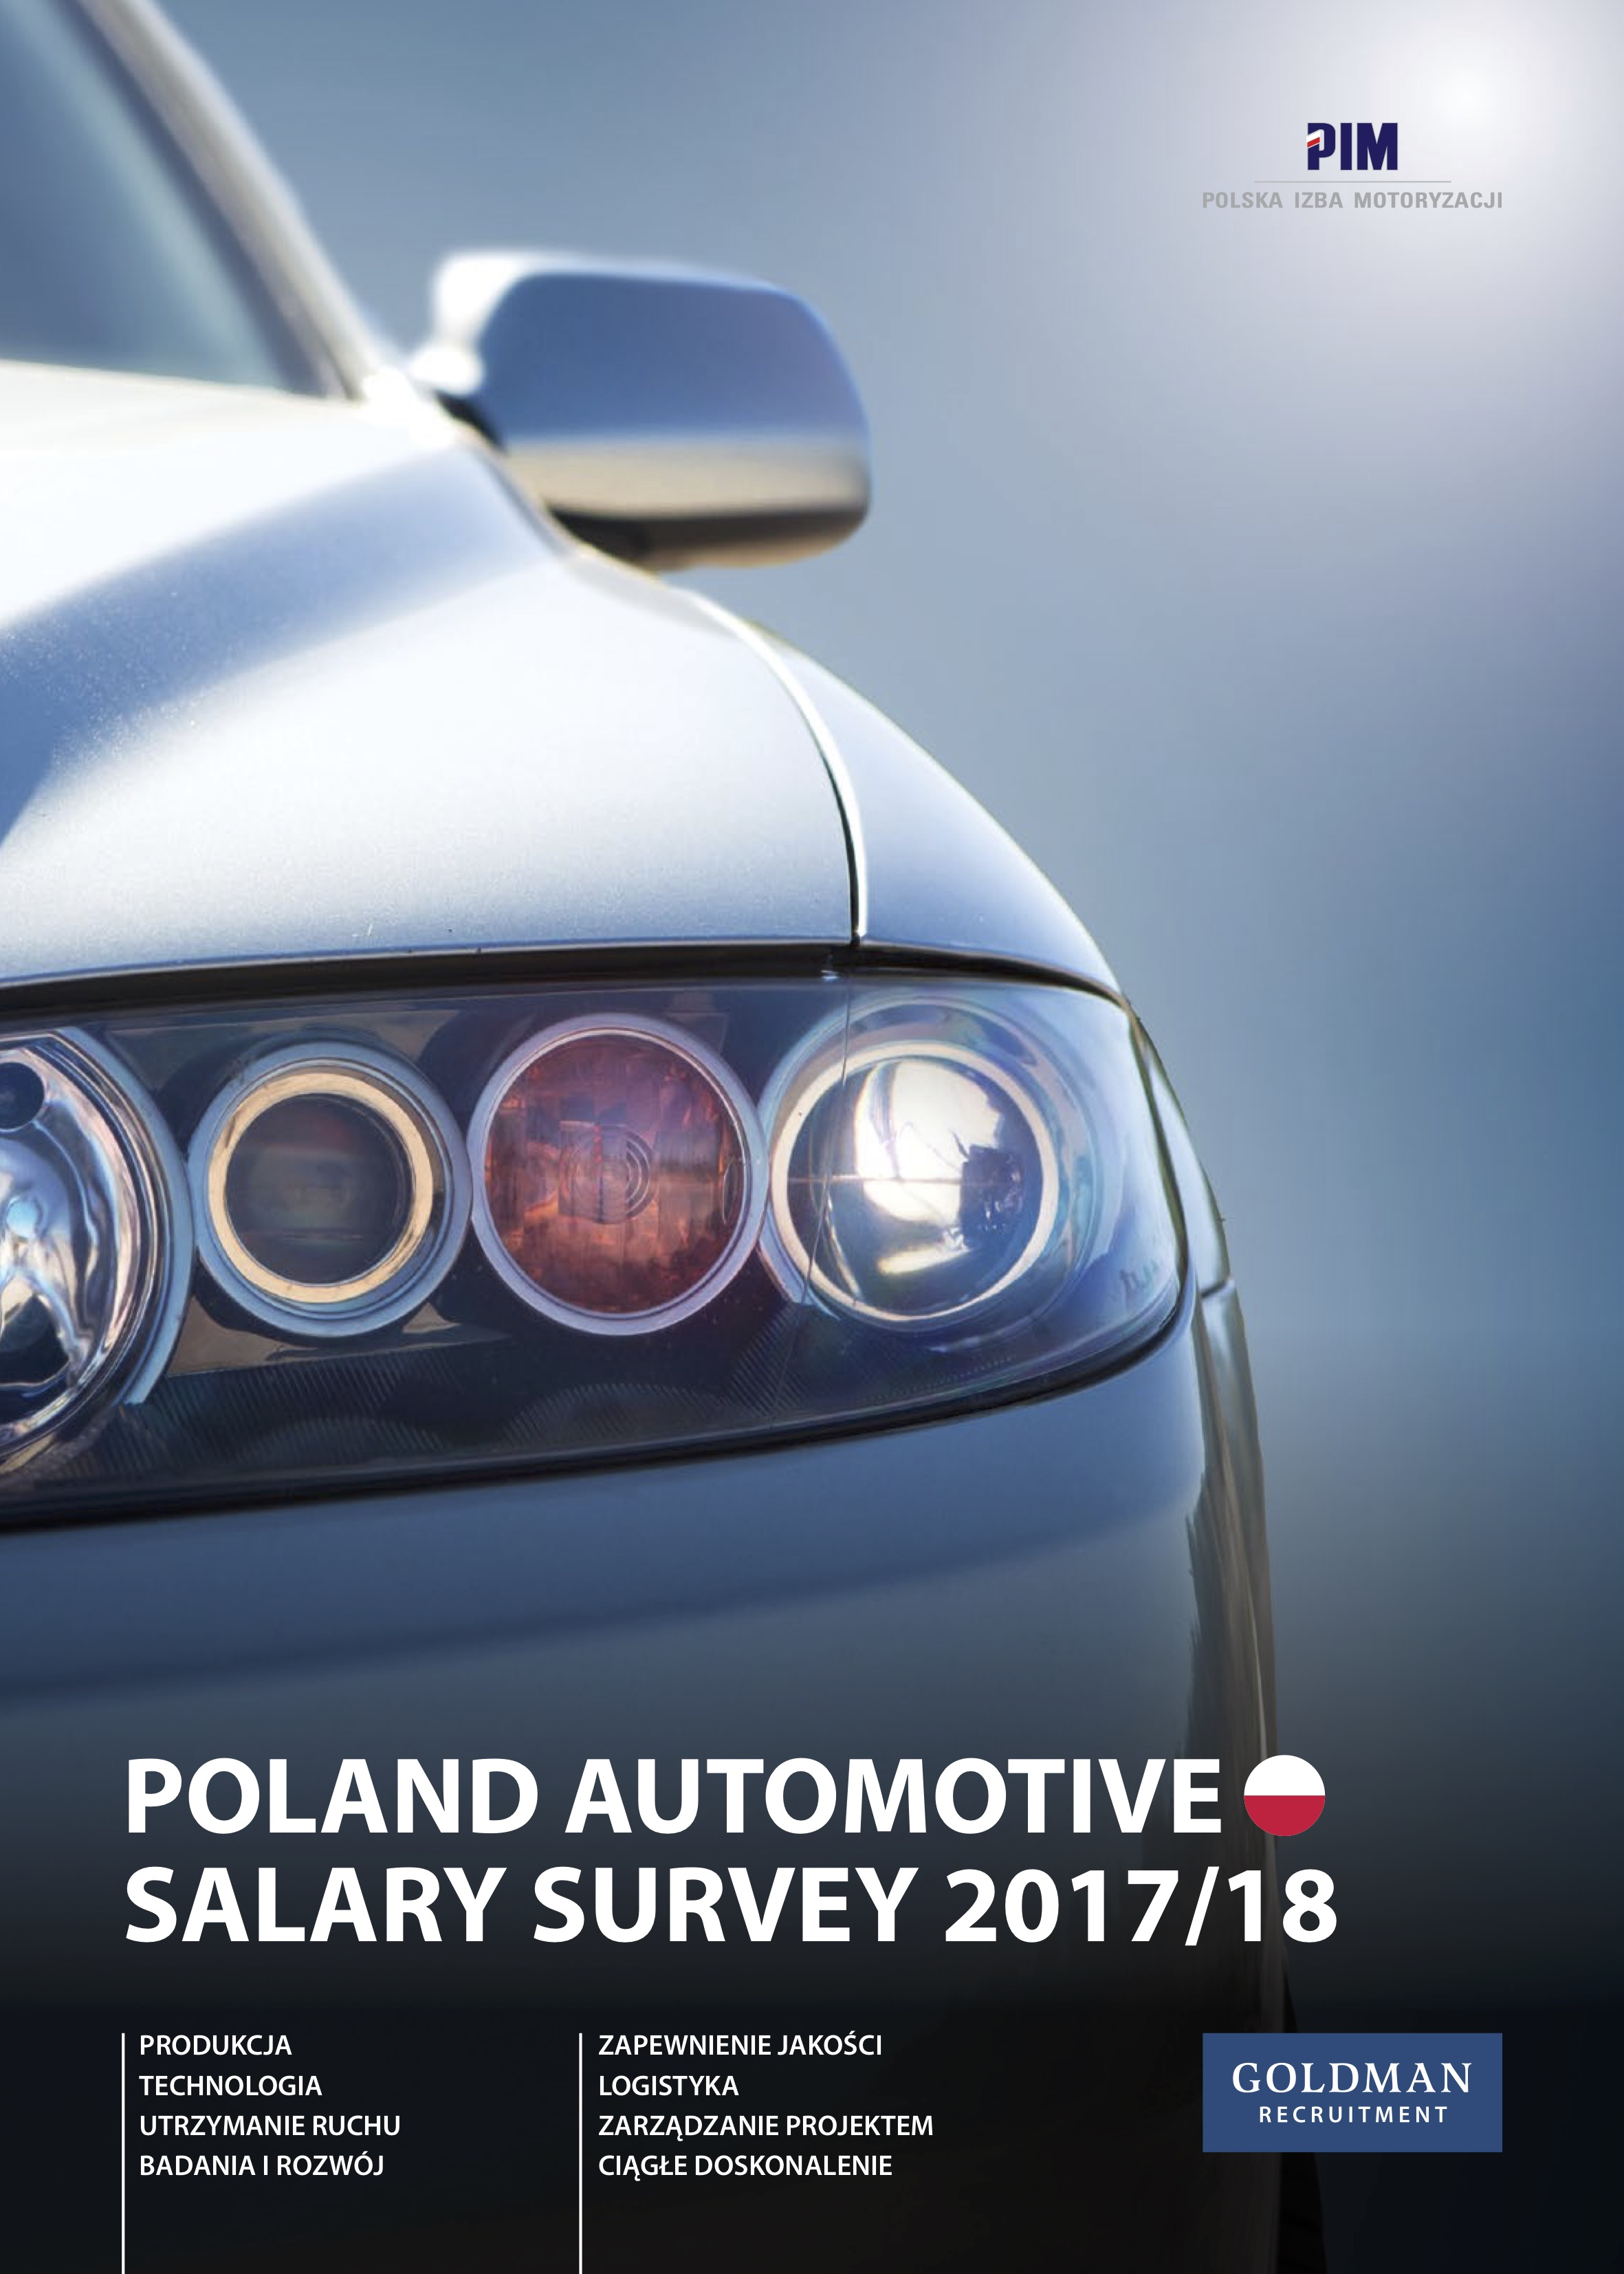 Poland Automotive Salary Survey